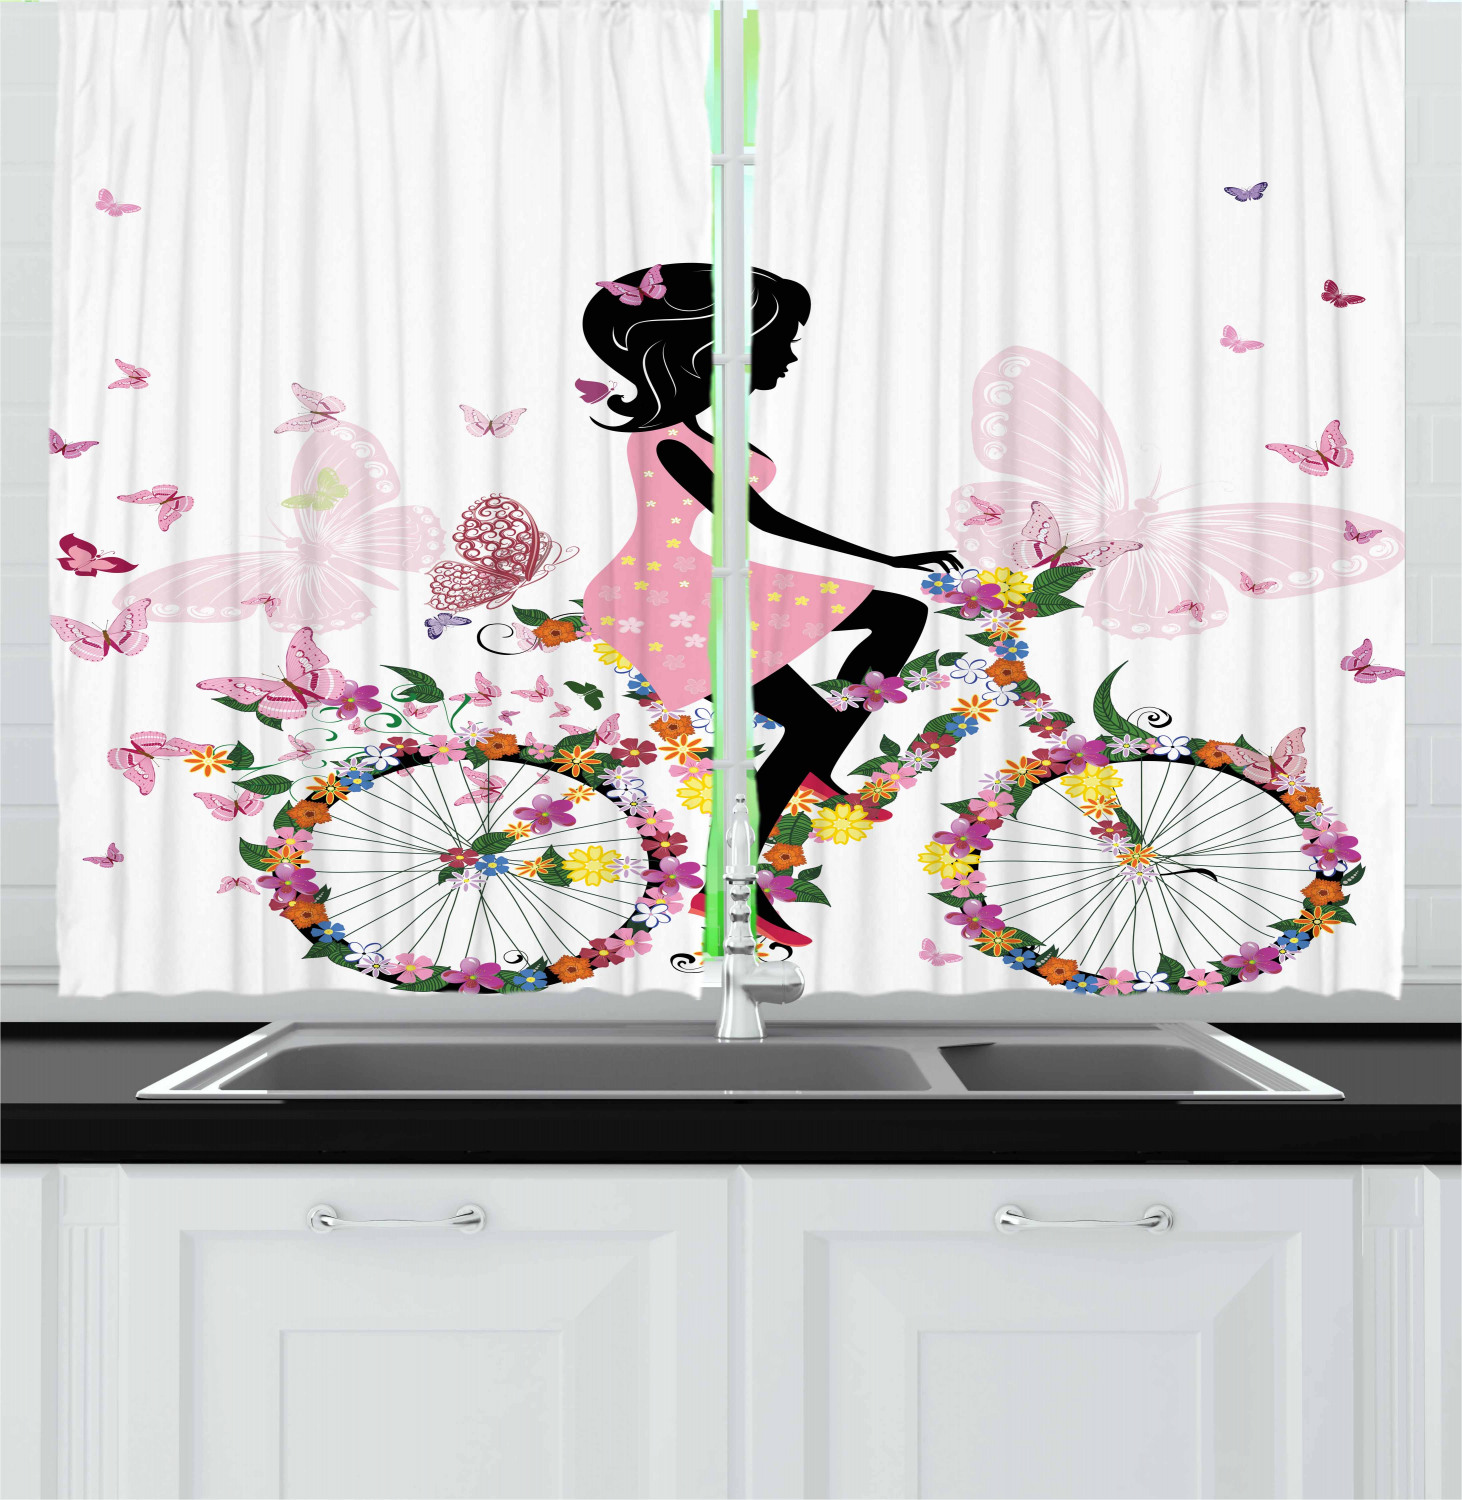 Bicycle Home Decor: Bicycle Kitchen Curtains 2 Panel Set Home Decor Window